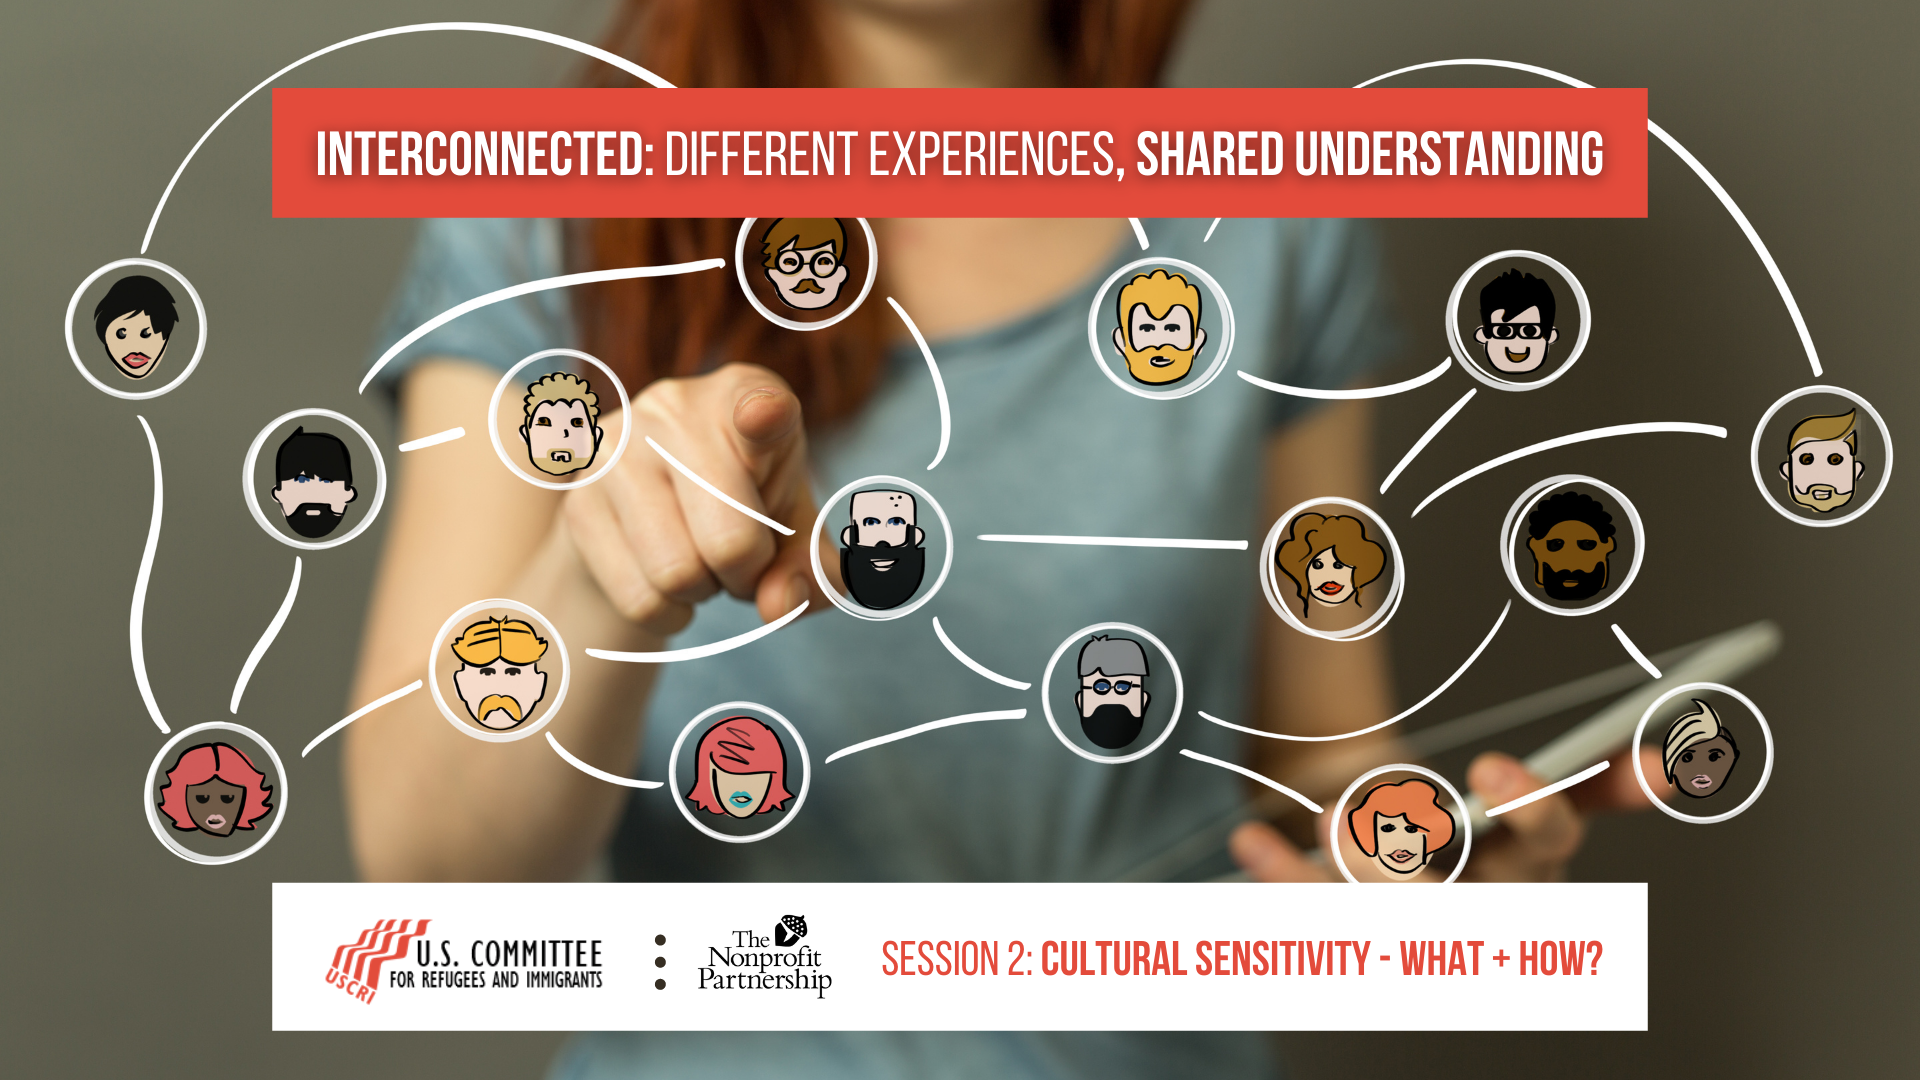 [Zoom Meeting] Interconnected: Different Experiences, Shared Understanding - Cultural Sensitivity - What & How?